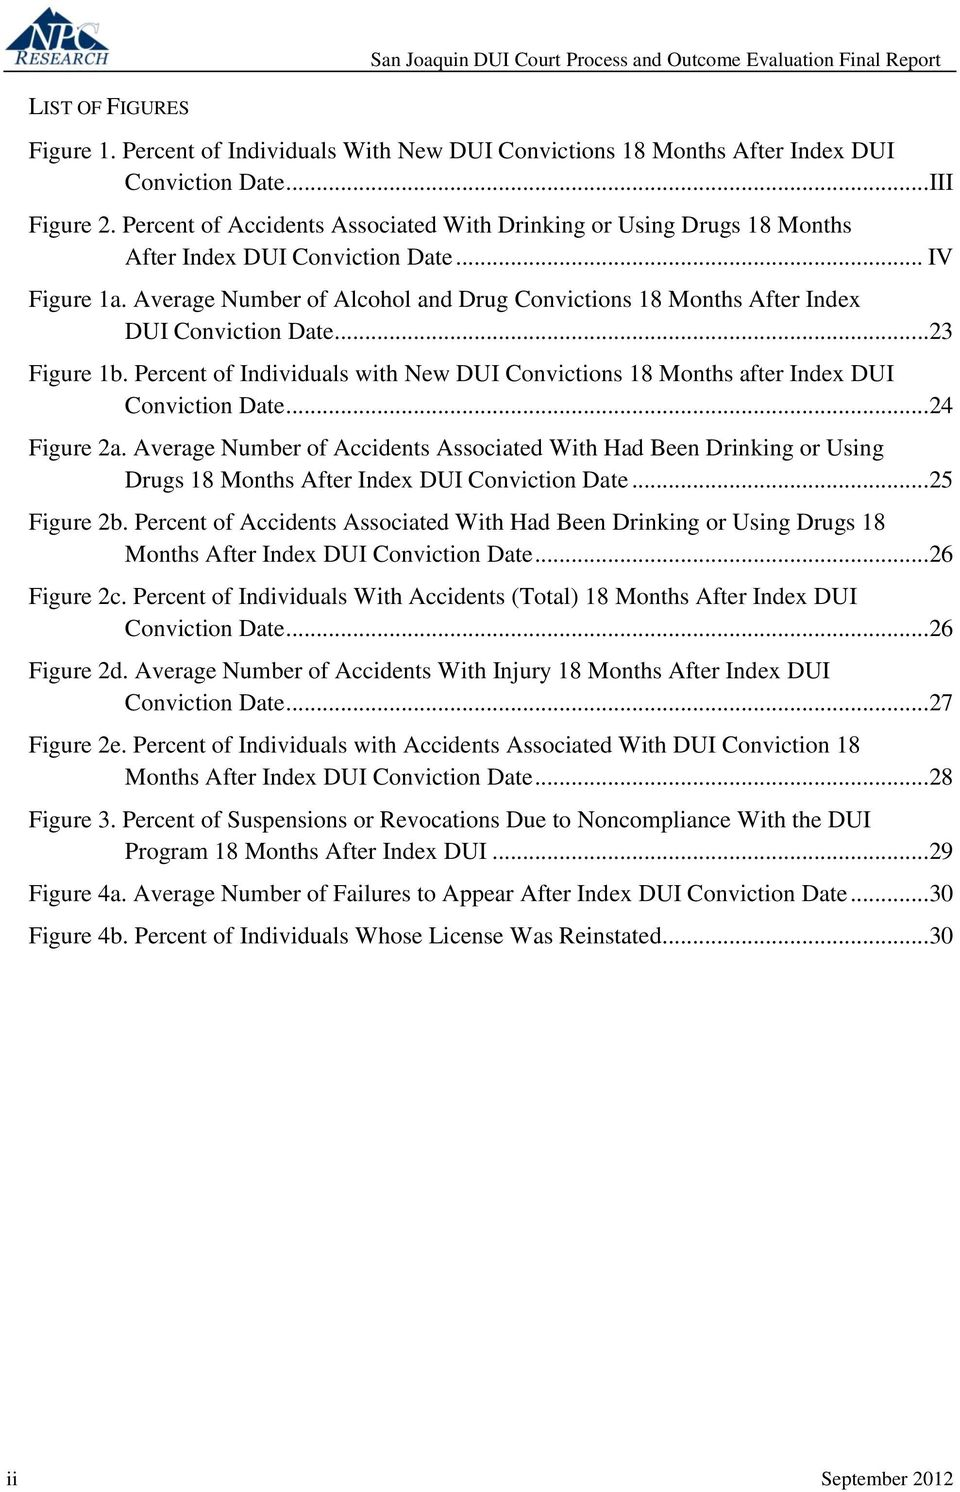 Average Number of Alcohol and Drug Convictions 18 Months After Index DUI Conviction Date...23 Figure 1b. Percent of Individuals with New DUI Convictions 18 Months after Index DUI Conviction Date.